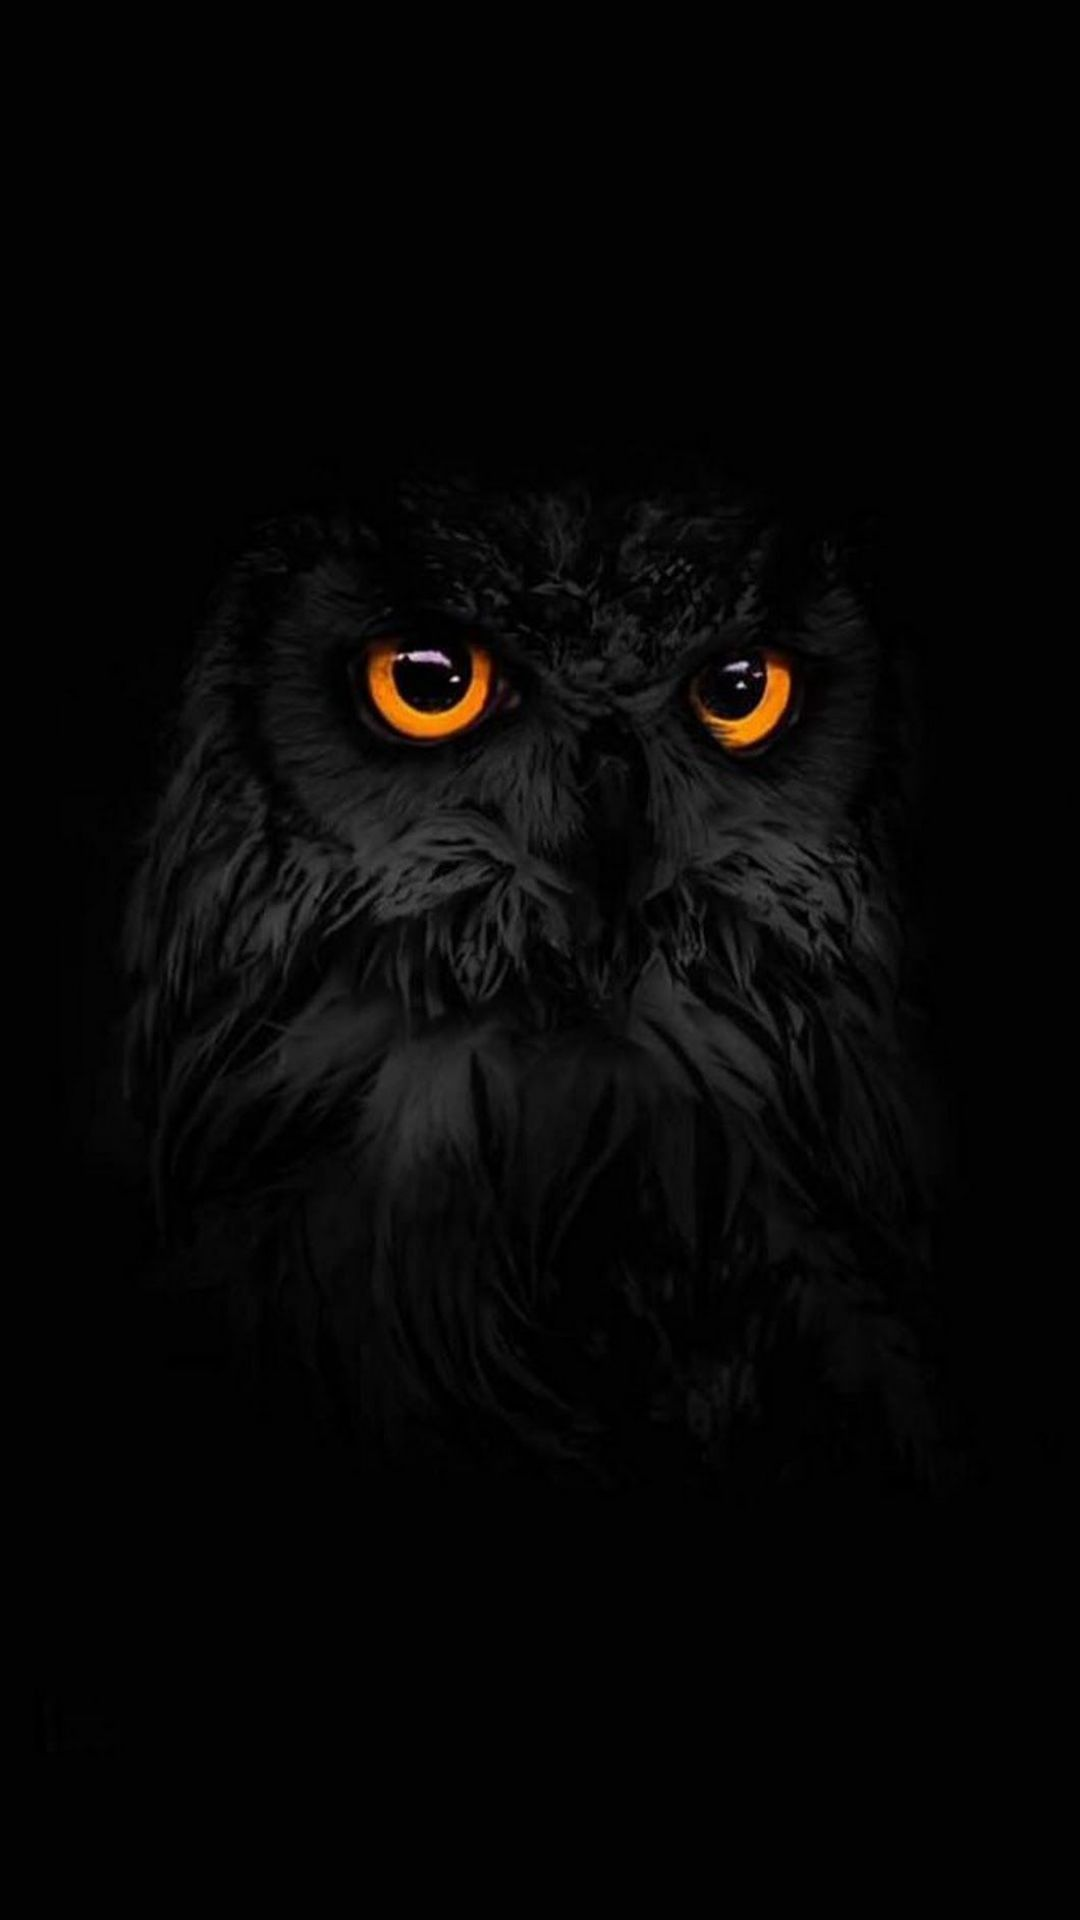 40 Black And White Owl Android Iphone Desktop Hd Backgrounds Wallpapers 1080p 4k 1080x1920 2020